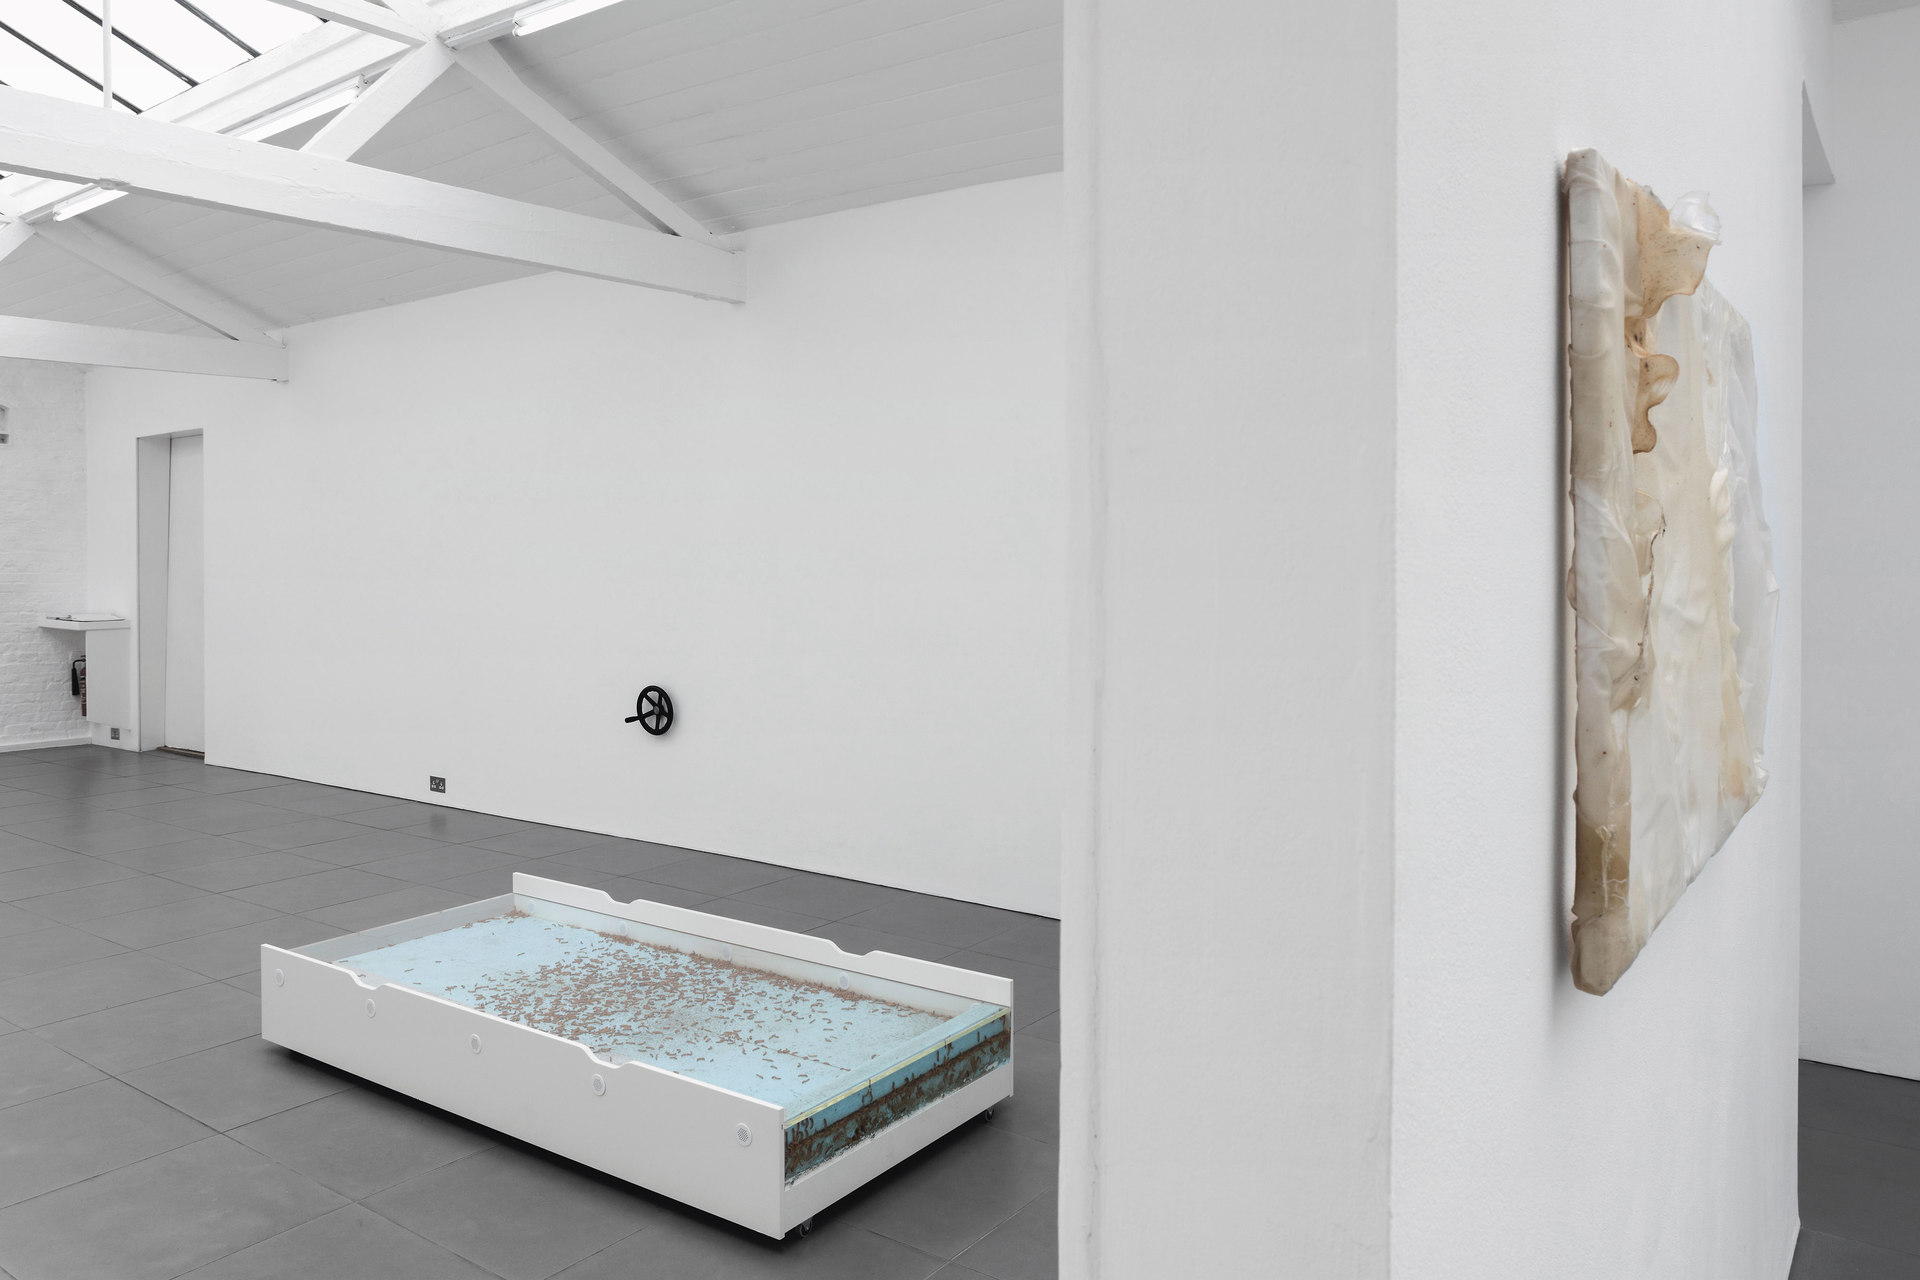 Aude Pariset, GREENHOUSES, installation view, 2016, Cell Project Space